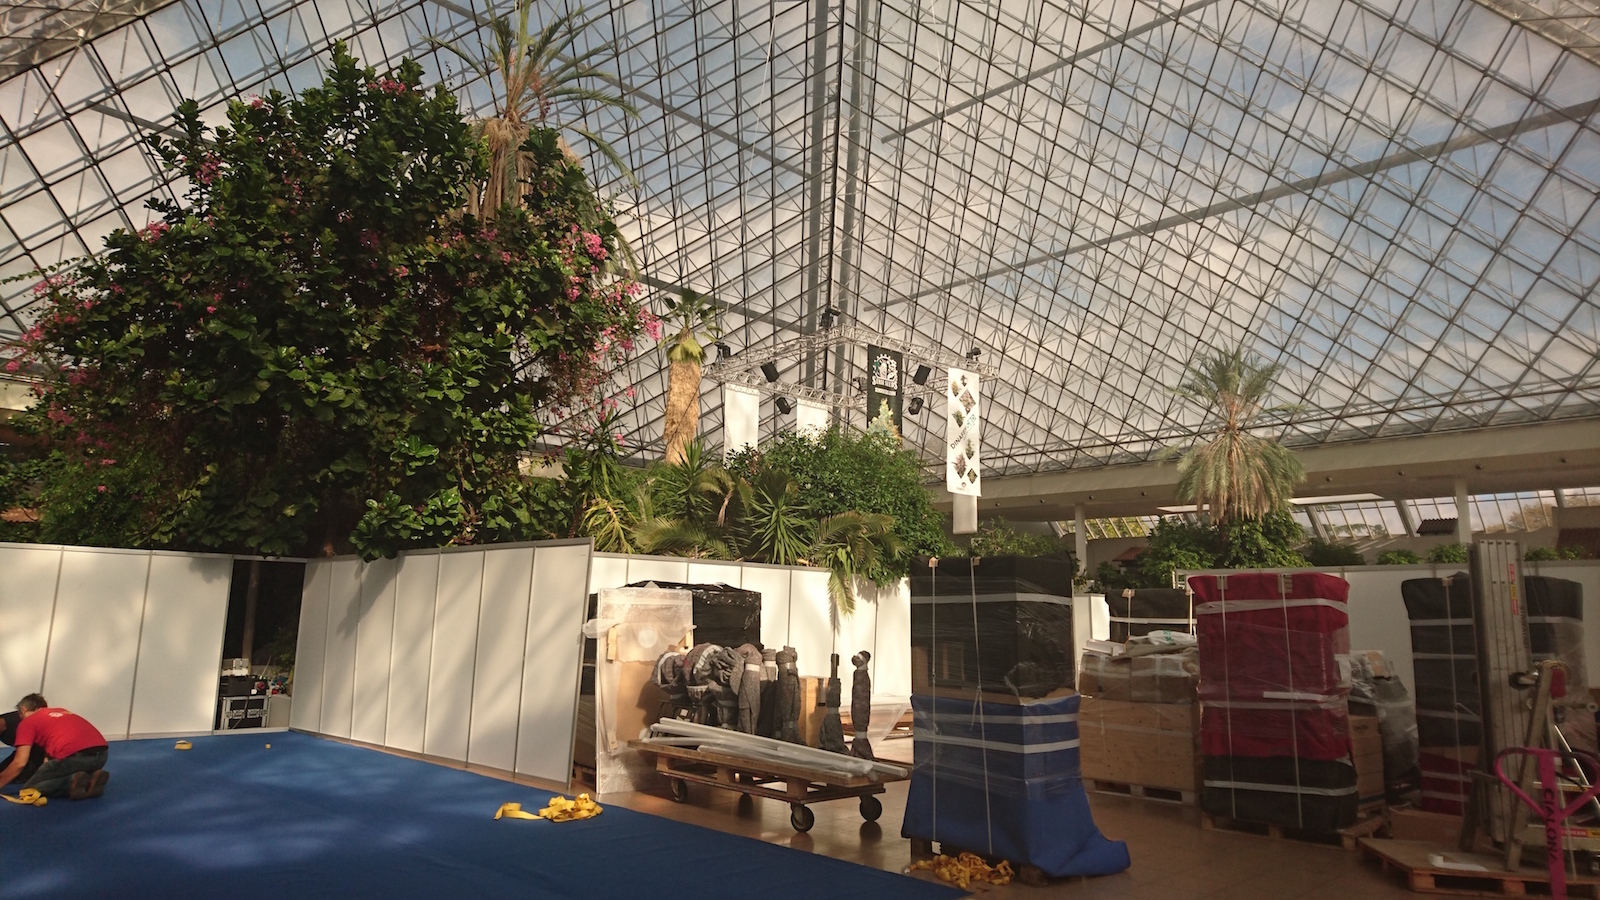 cultiva has a big glass pyramid expo hall